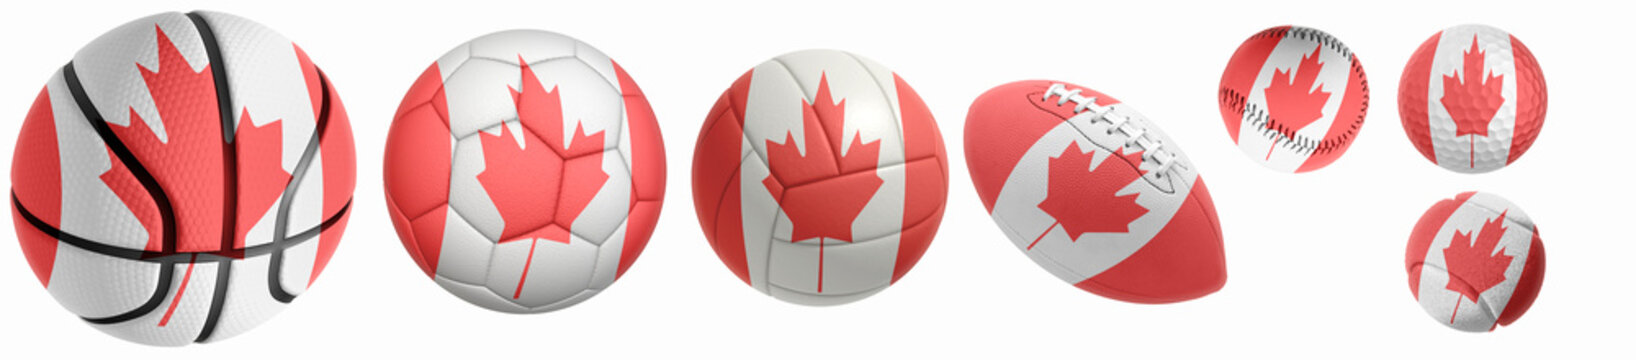 Canada flag superimposed on balls: Golf, basketball, volleyball, soccer, tennis, rugby, baseball isolated on a white background. 3d rendering